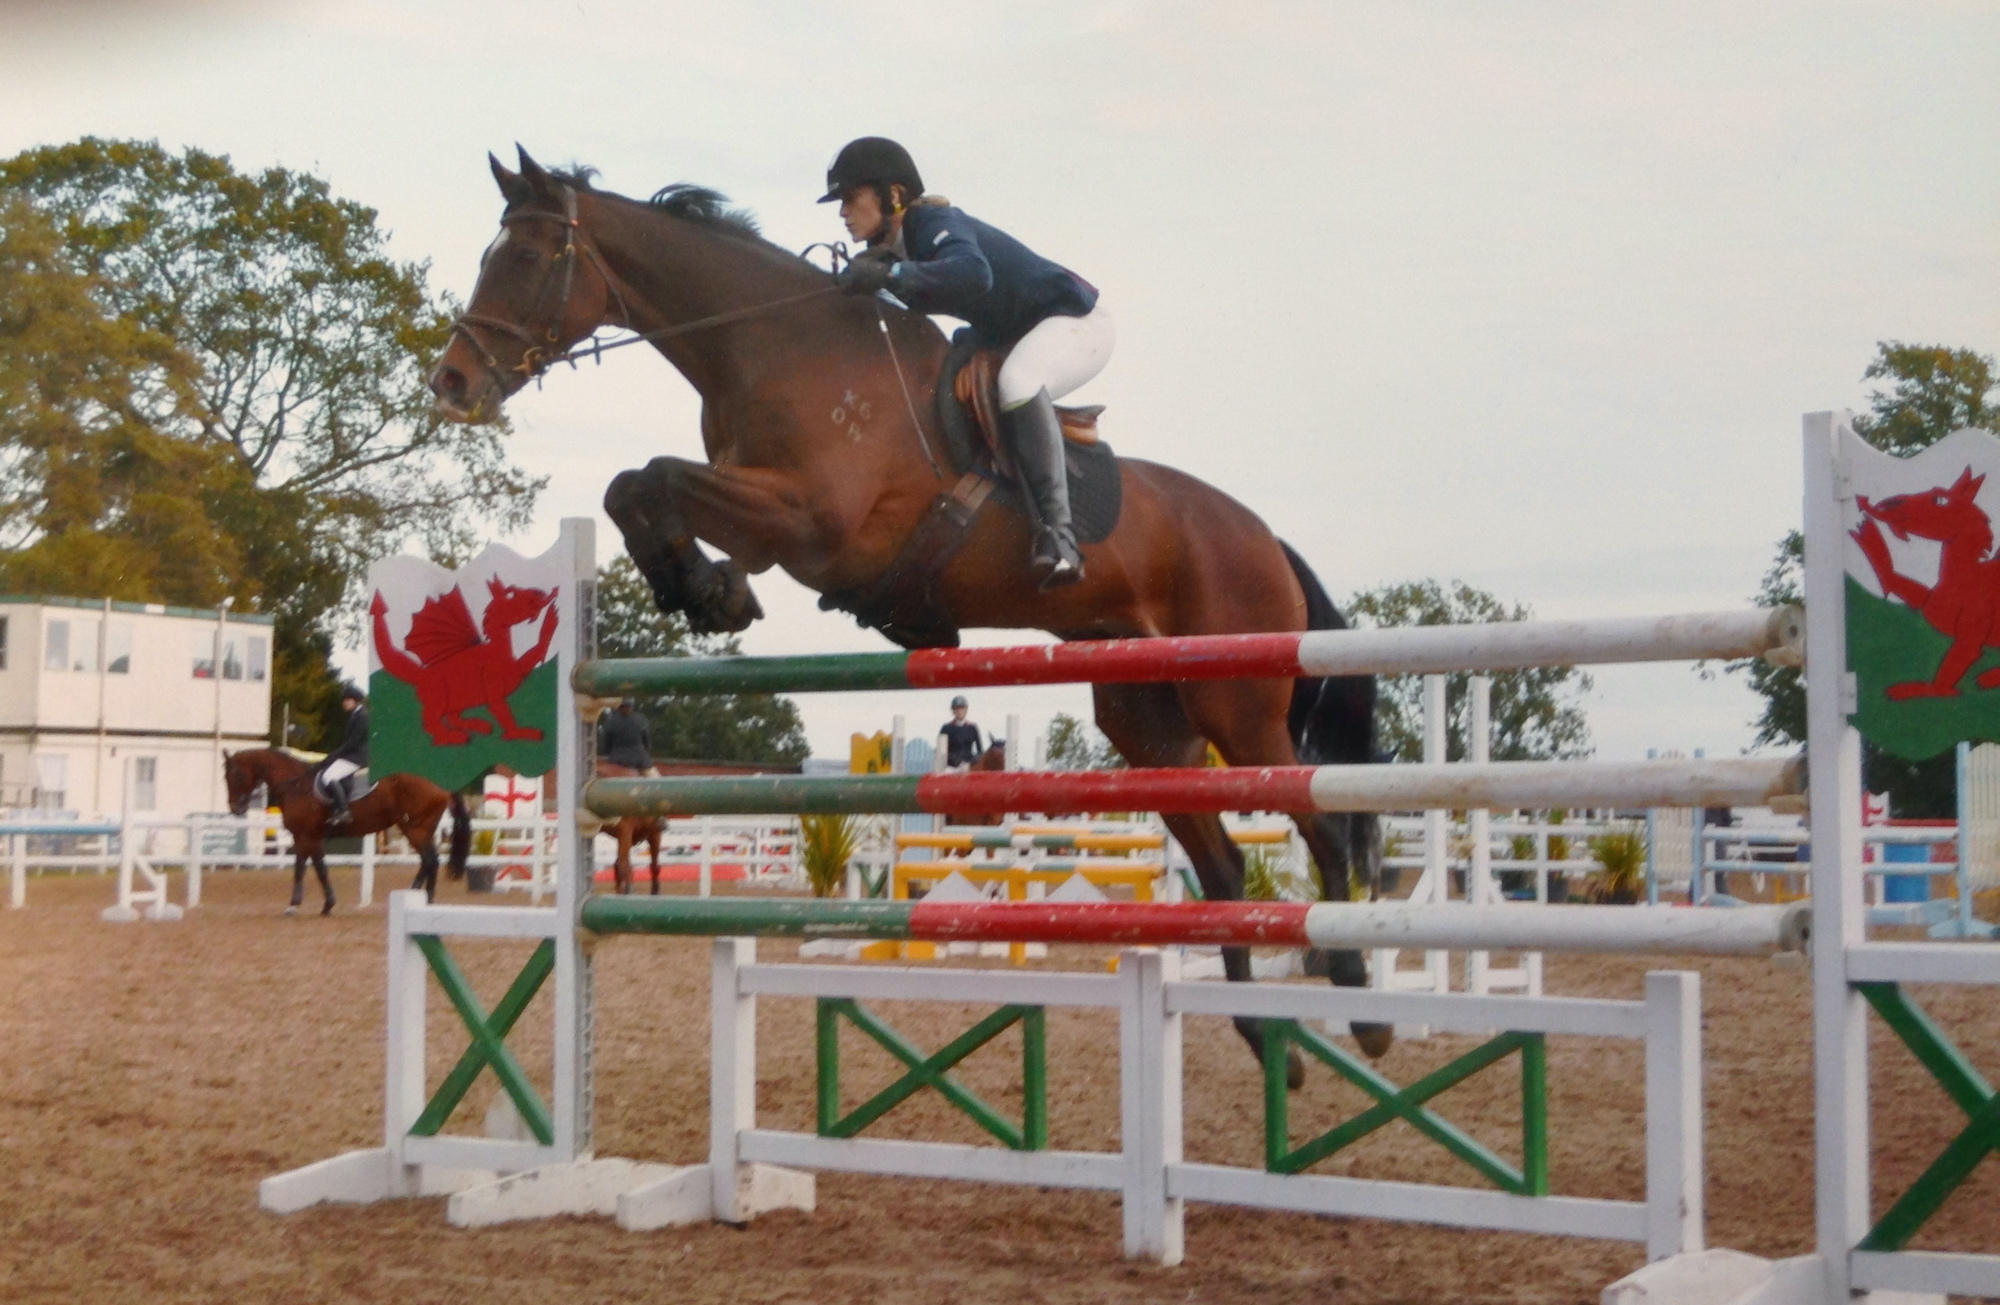 Marianne on a horse jumping over a post